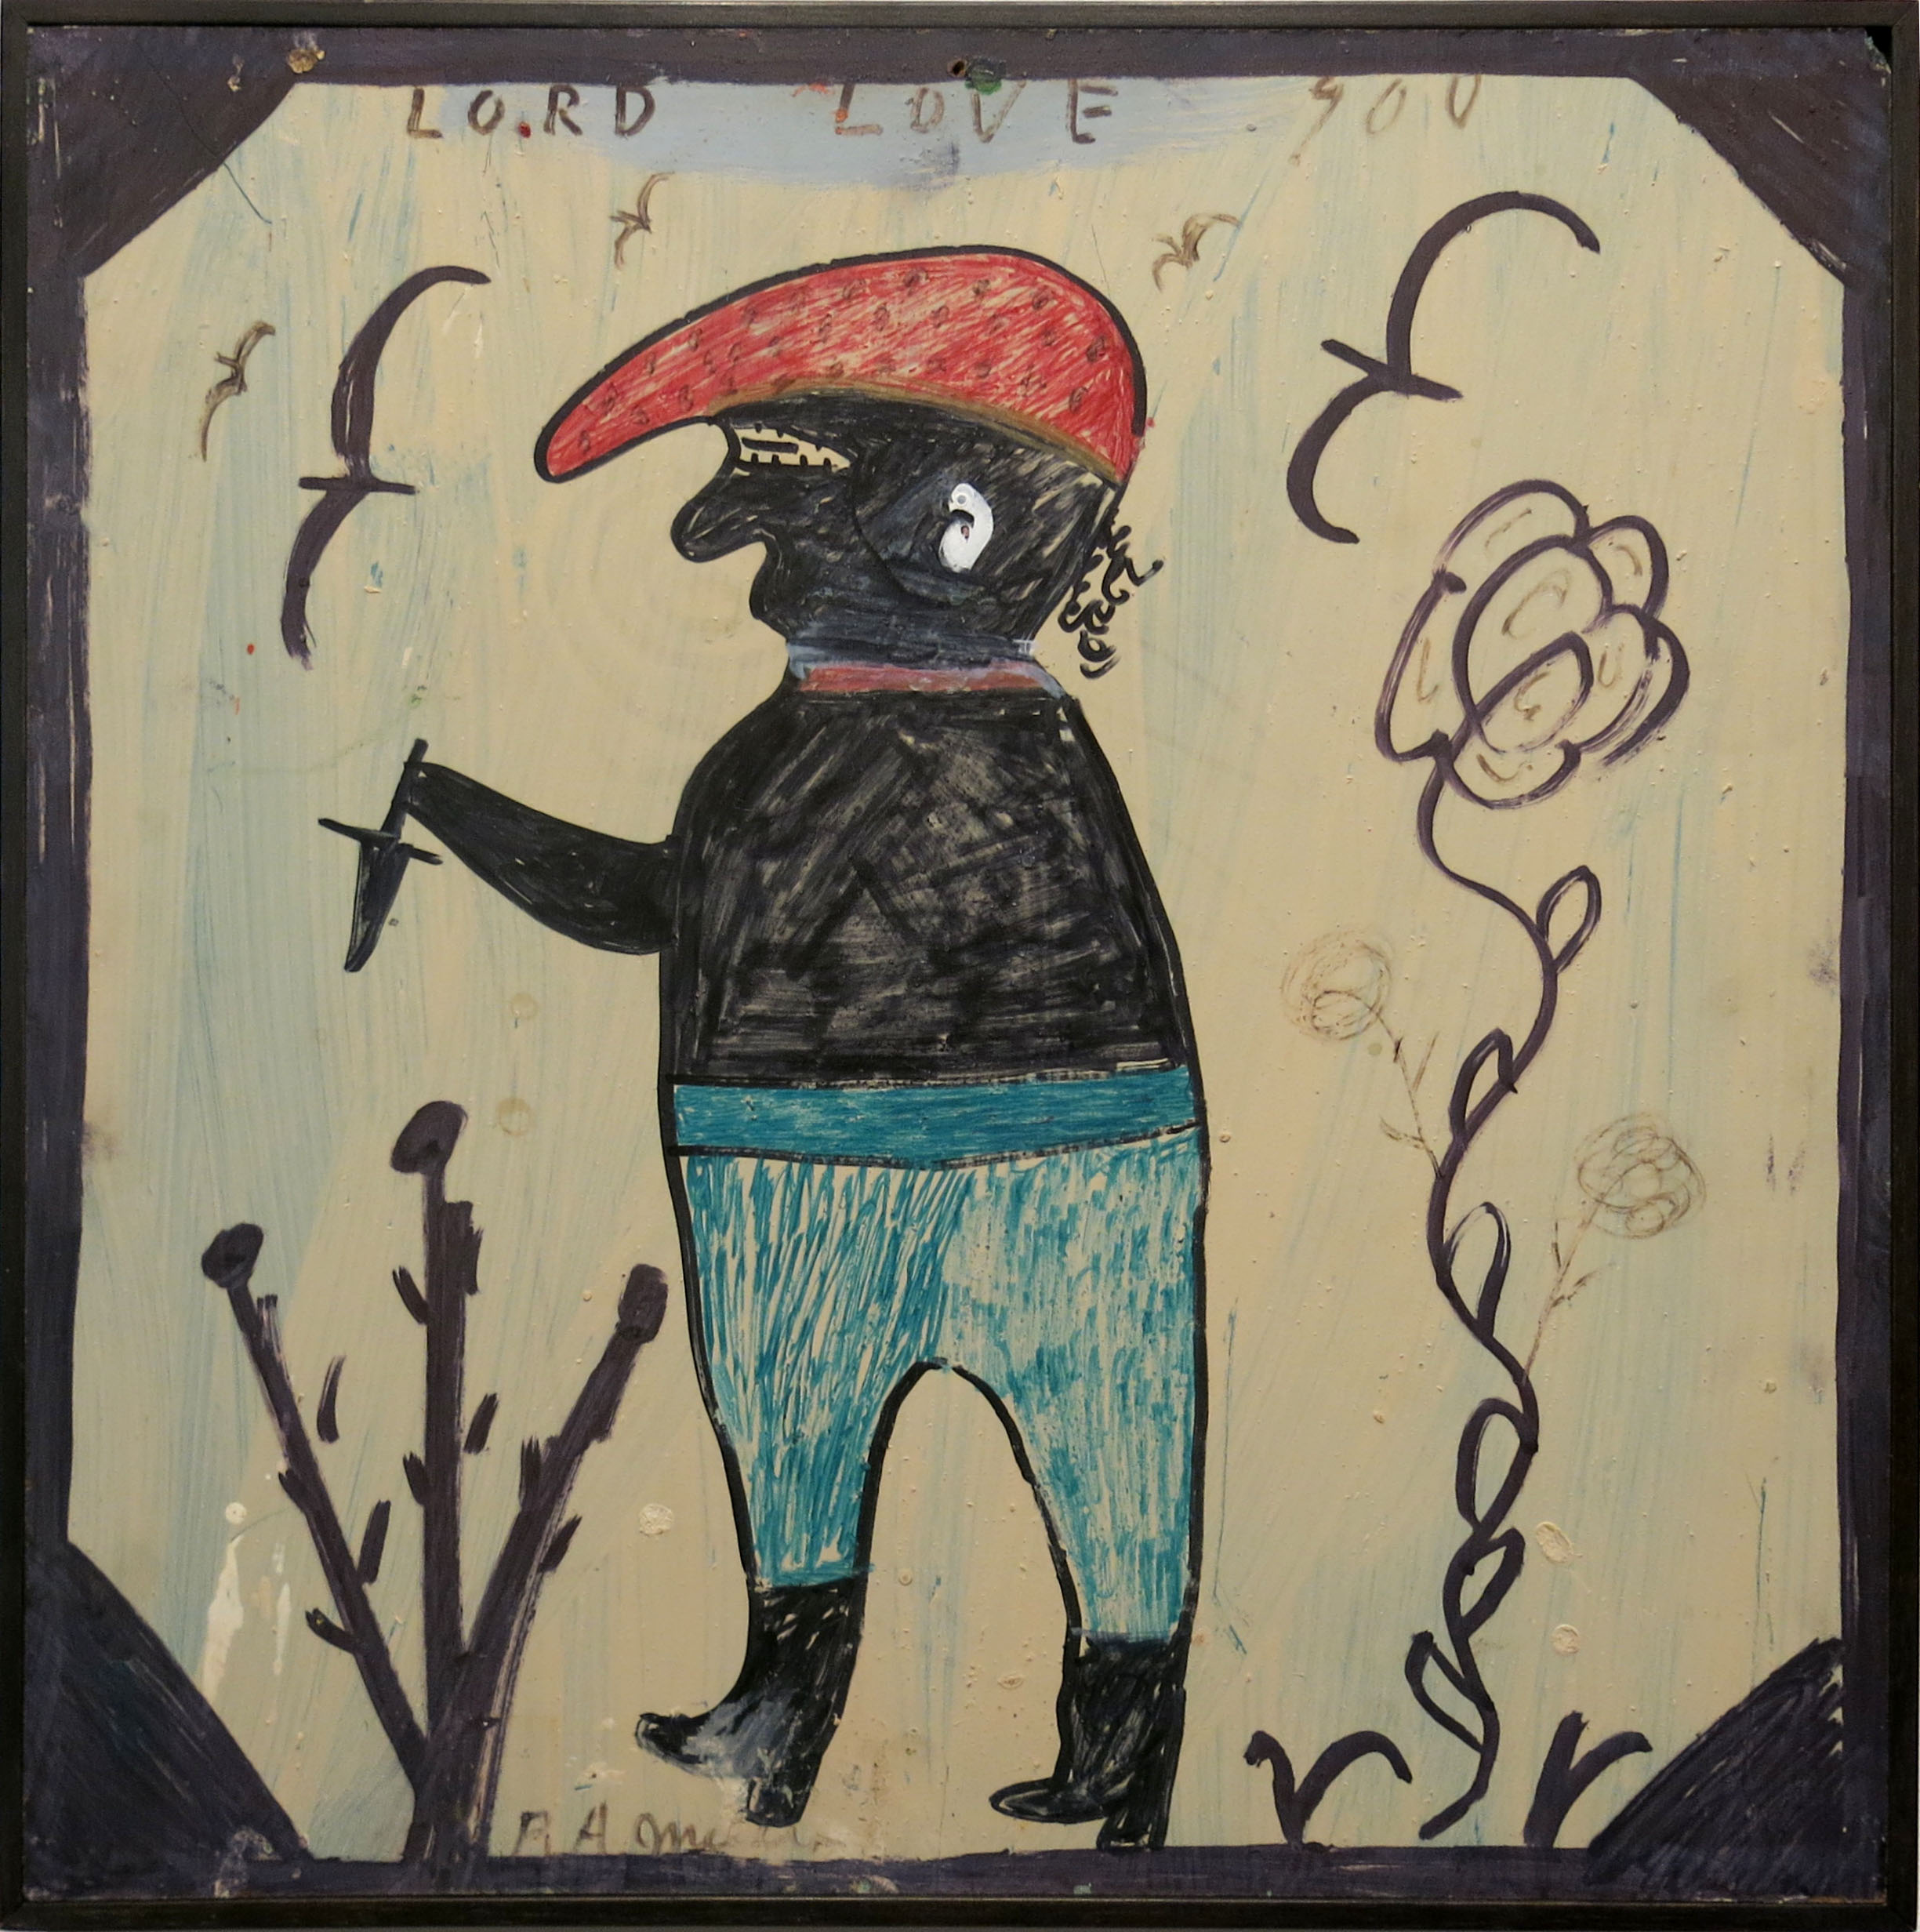 RA Miller,  Untitled (Lord Love You),  1990, Mixed media on wood panel, 18h x 18w in.